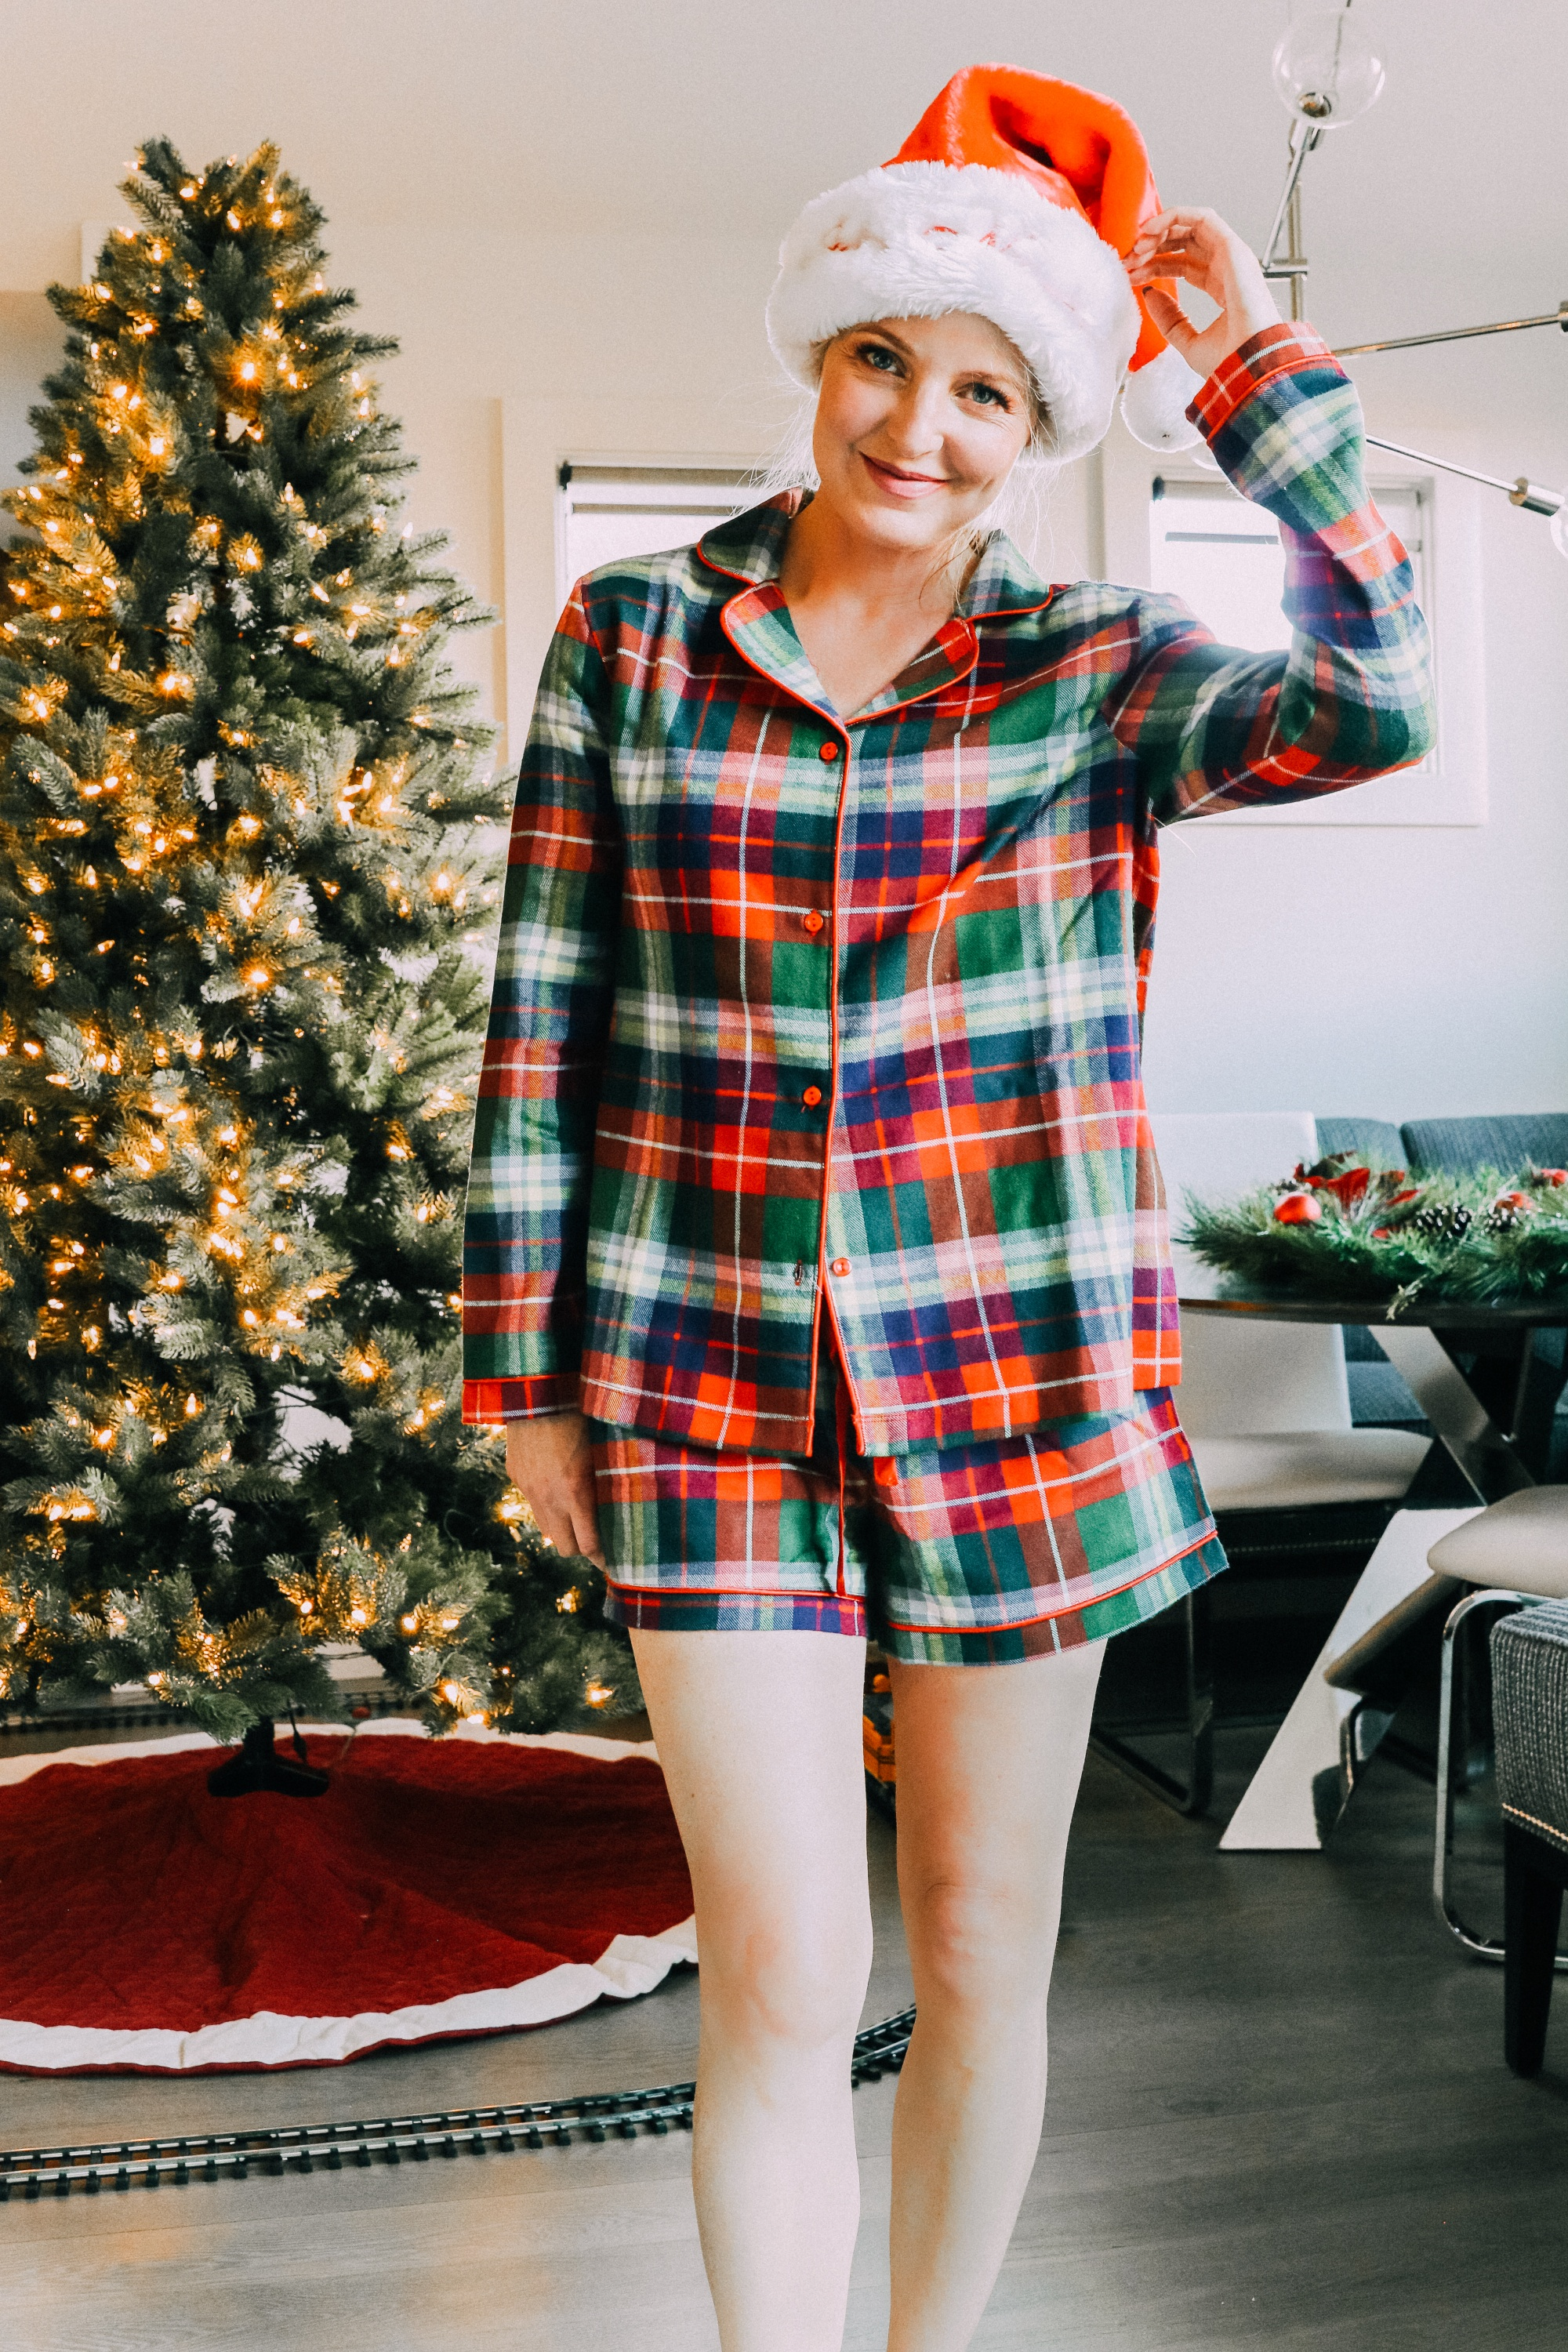 How to make holiday decorating easier, Fashion blogger Erin Busbee of BusbeeStyle.com sharing how to make the holidays more stress free wearing plaid pajamas shorts and top by Jockey and a Santa hat by her pre-lit tree in Telluride, CO